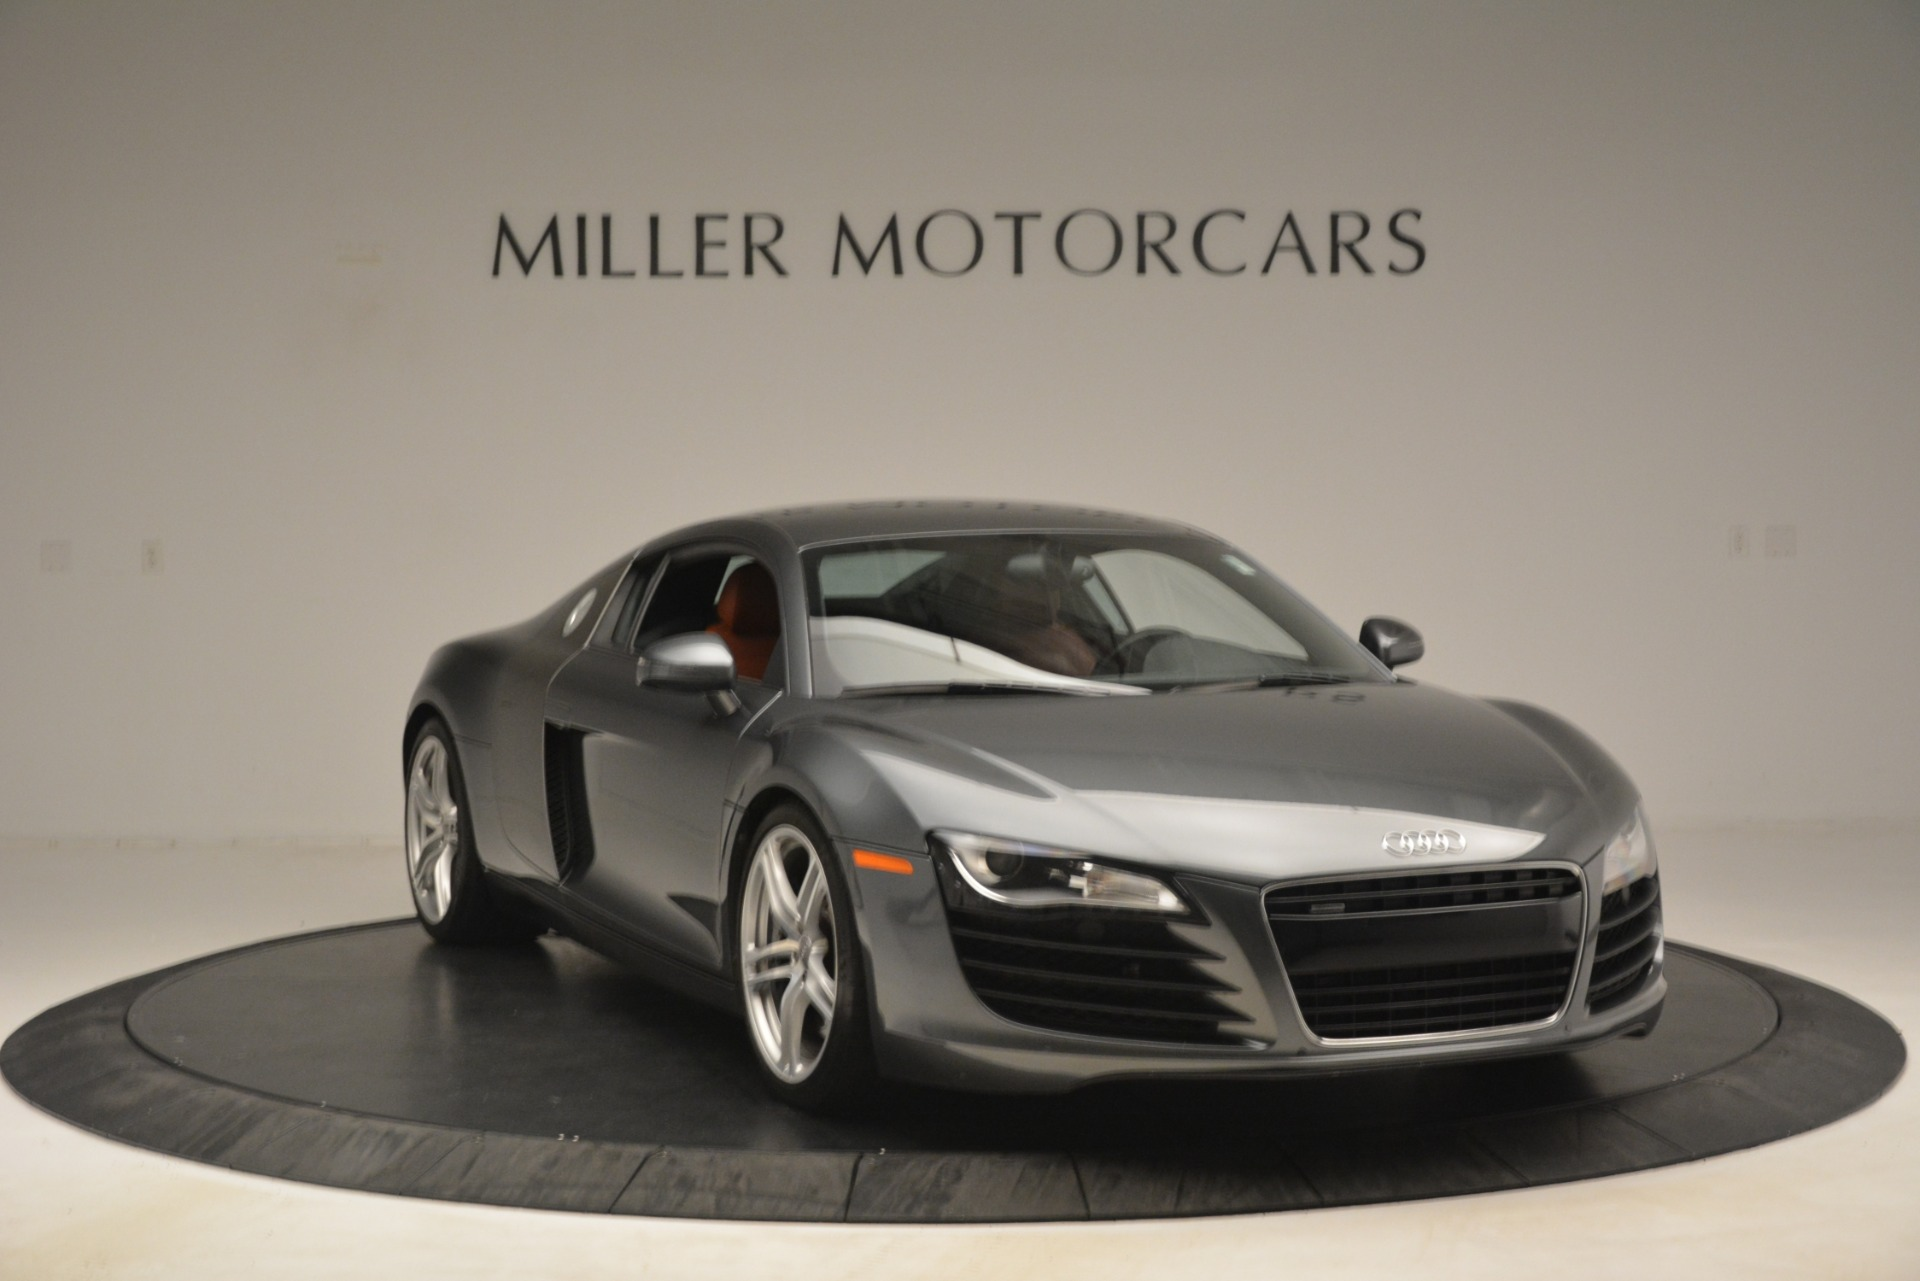 Used 2009 Audi R8 quattro For Sale In Greenwich, CT 3228_p12